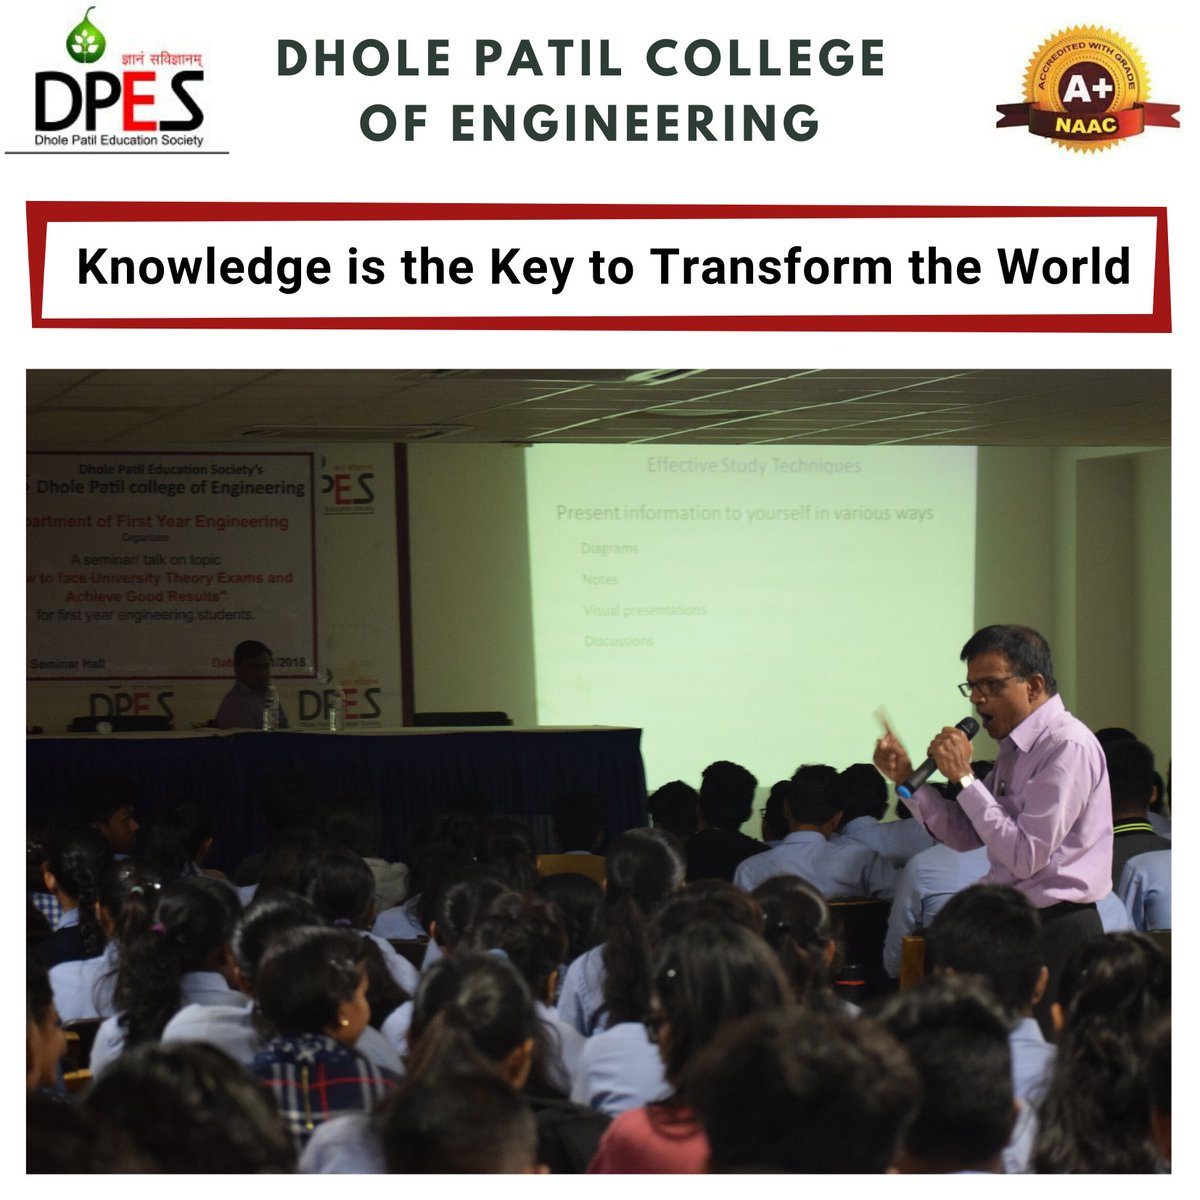 We at Dhole Patil College of Engineering, Keep in mind that the education we provide to our students is with the knowledge necessary for the attainment of their many future goals. #education #dpcoe #dpespune #knowledge #engineeringcollege #engineeringstudents #engineeringpic.twitter.com/SaFxMAPMiS